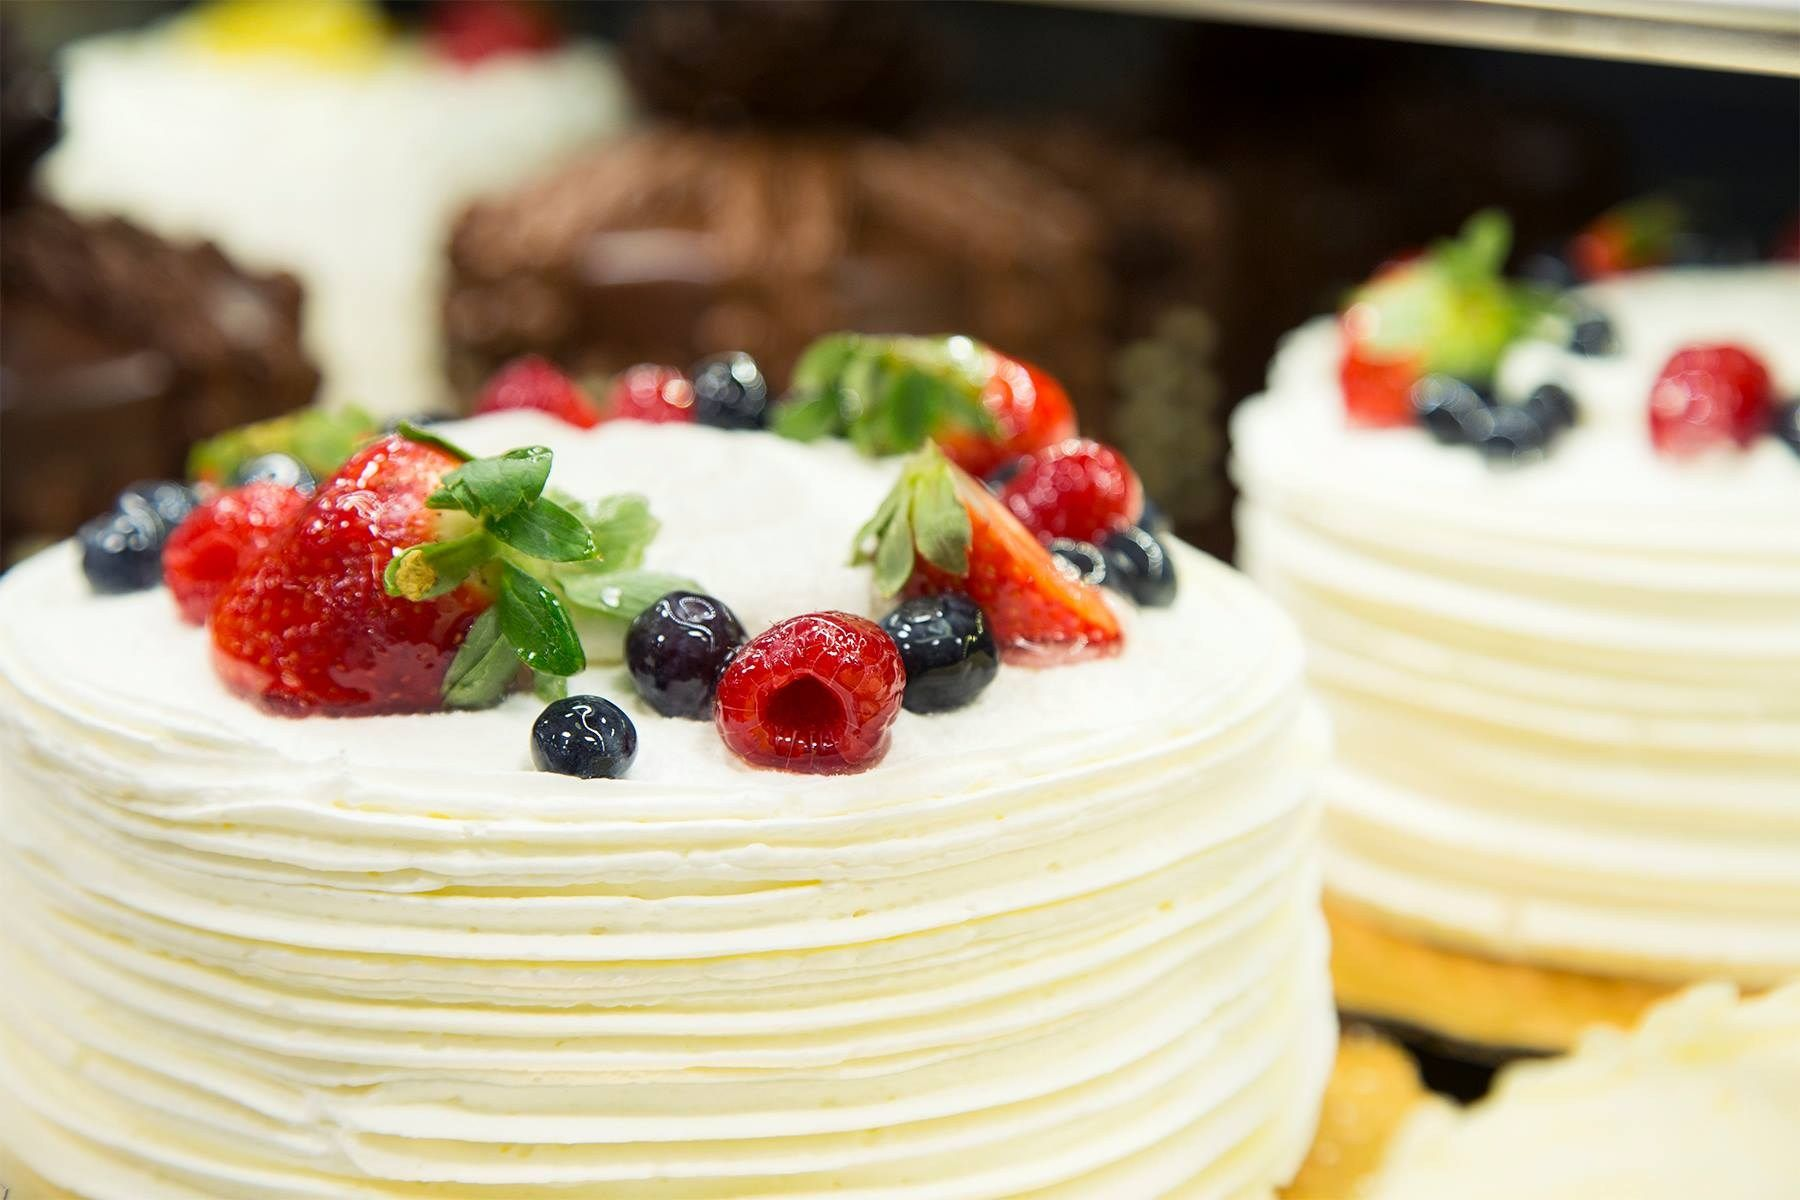 30 Beautiful Photo Of Cub Foods Birthday Cakes The 5 Best Grocery Store You Can Buy Taste Home